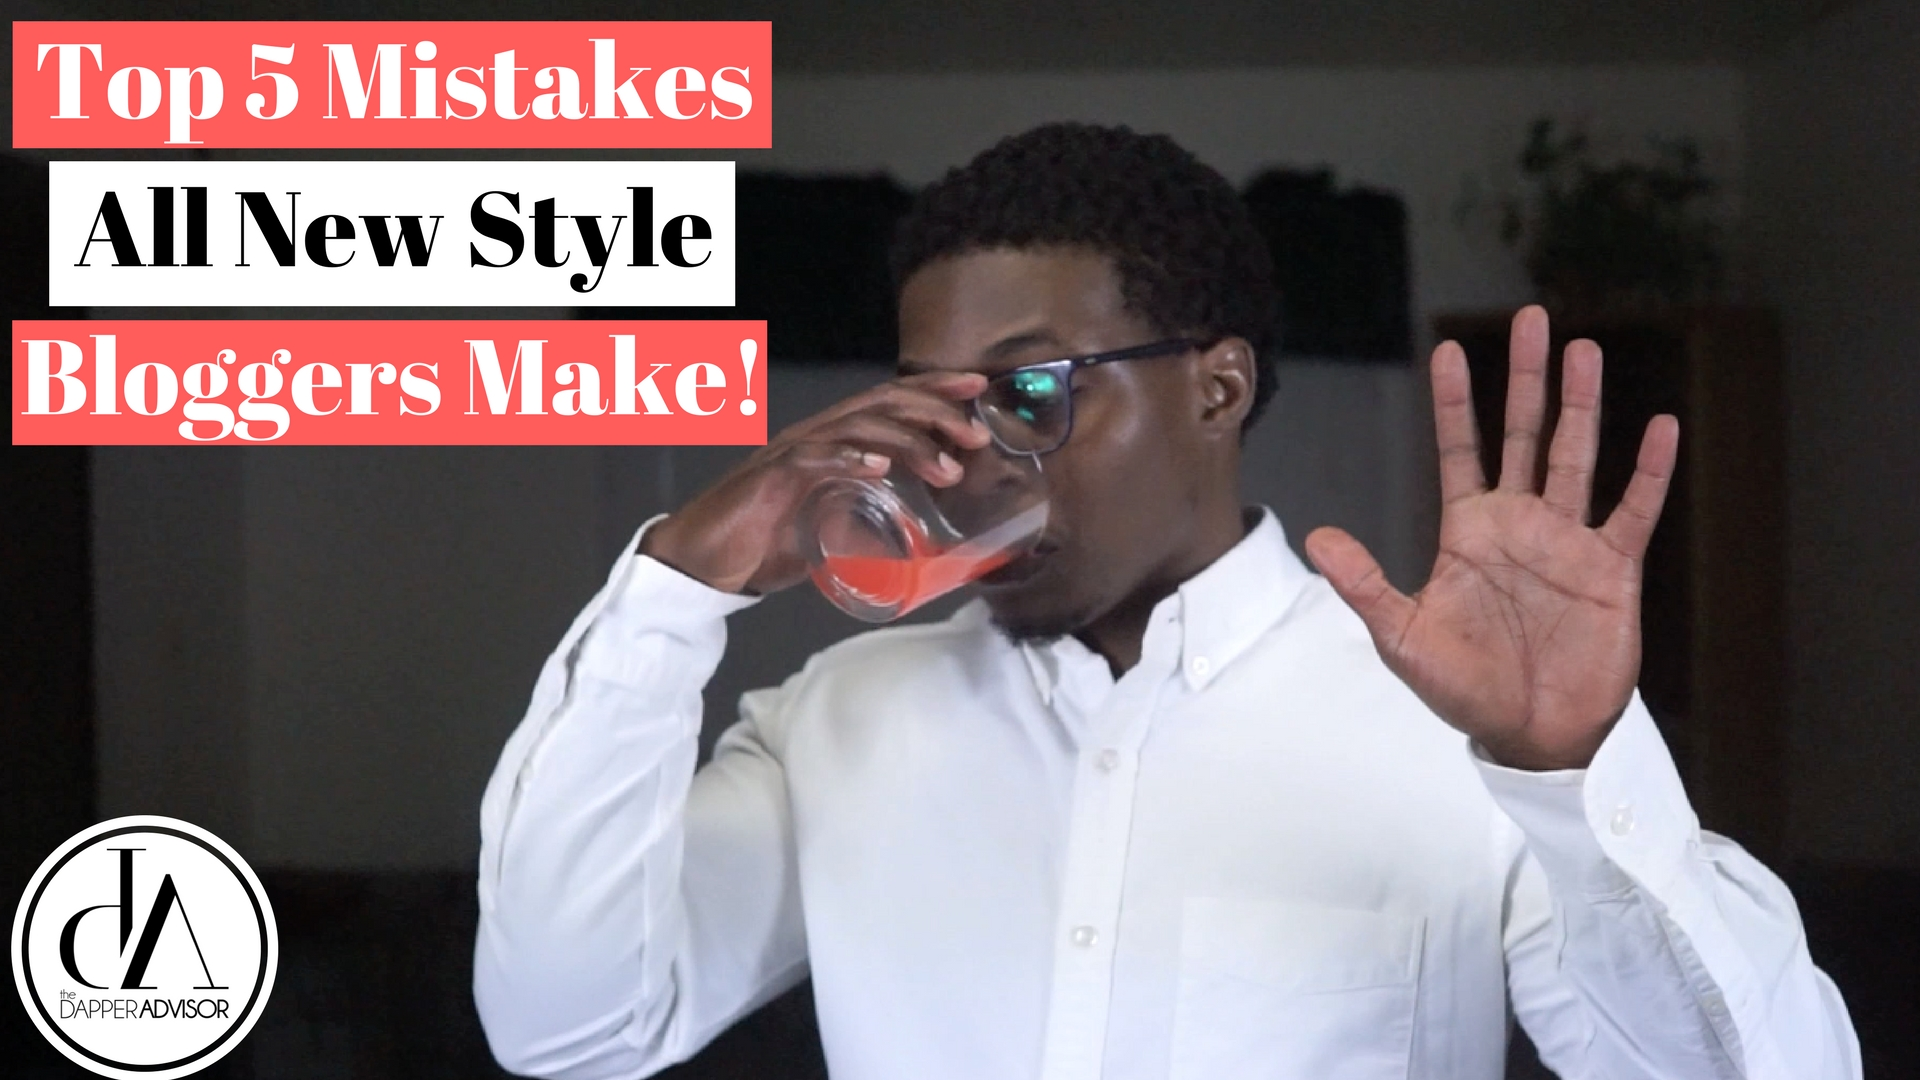 Cocktails & Conversations Ep. 6: The 5 Mistakes New Style Bloggers Make